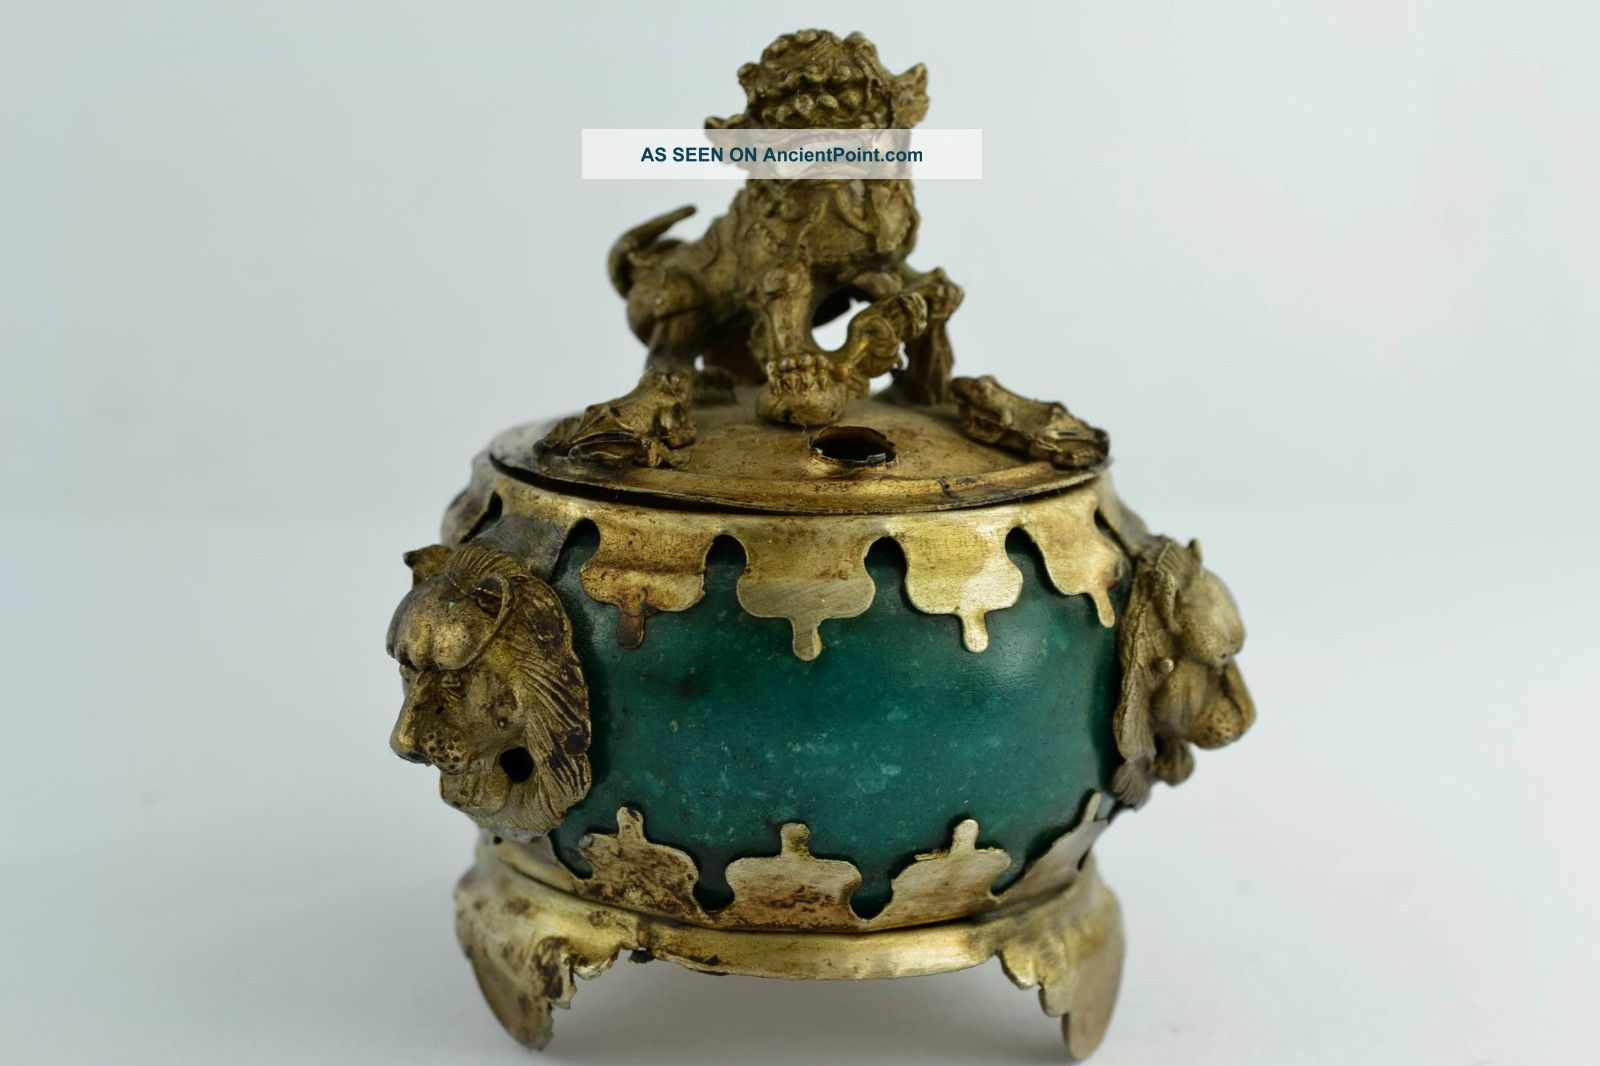 China Rare Collectibles Old Decorated Handwork Jade Kylin Incense Burner Uncategorized photo